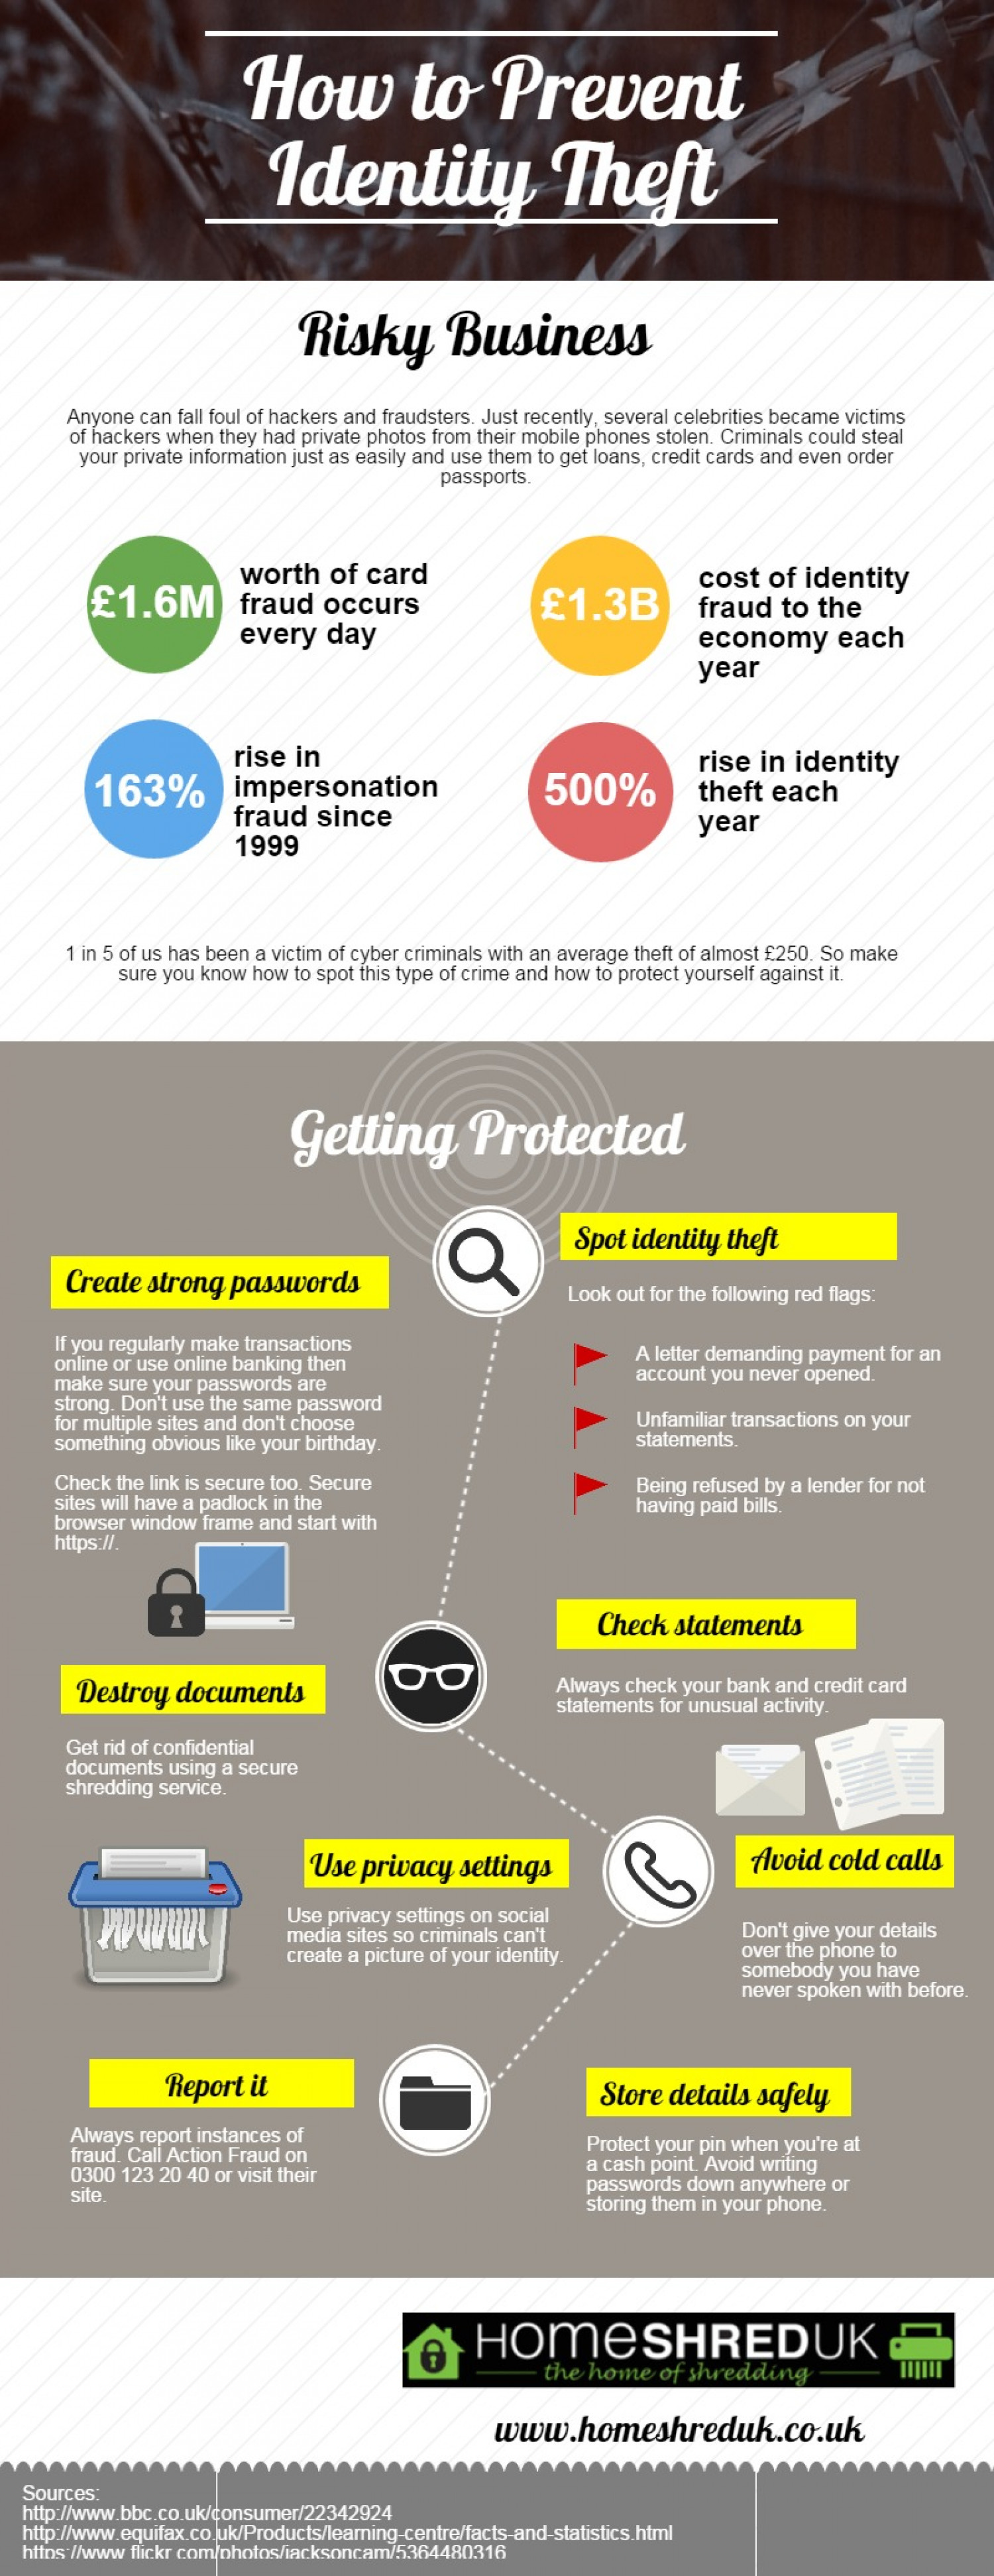 How to Prevent Identity Theft Infographic